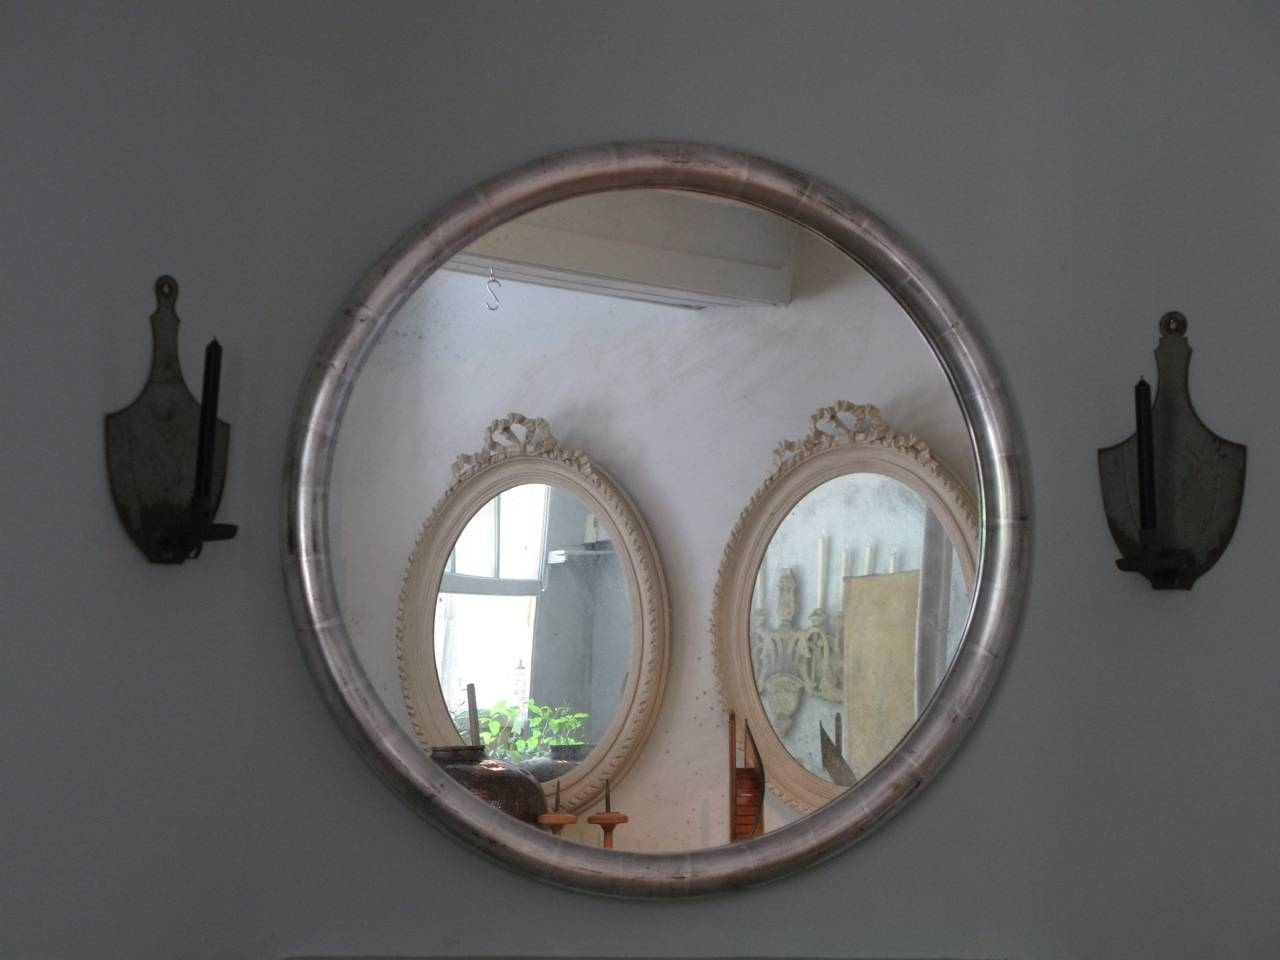 Large Round Silver Mirror 57 Trendy Interior Or Design Wall intended for Antique Round Mirrors (Image 14 of 25)